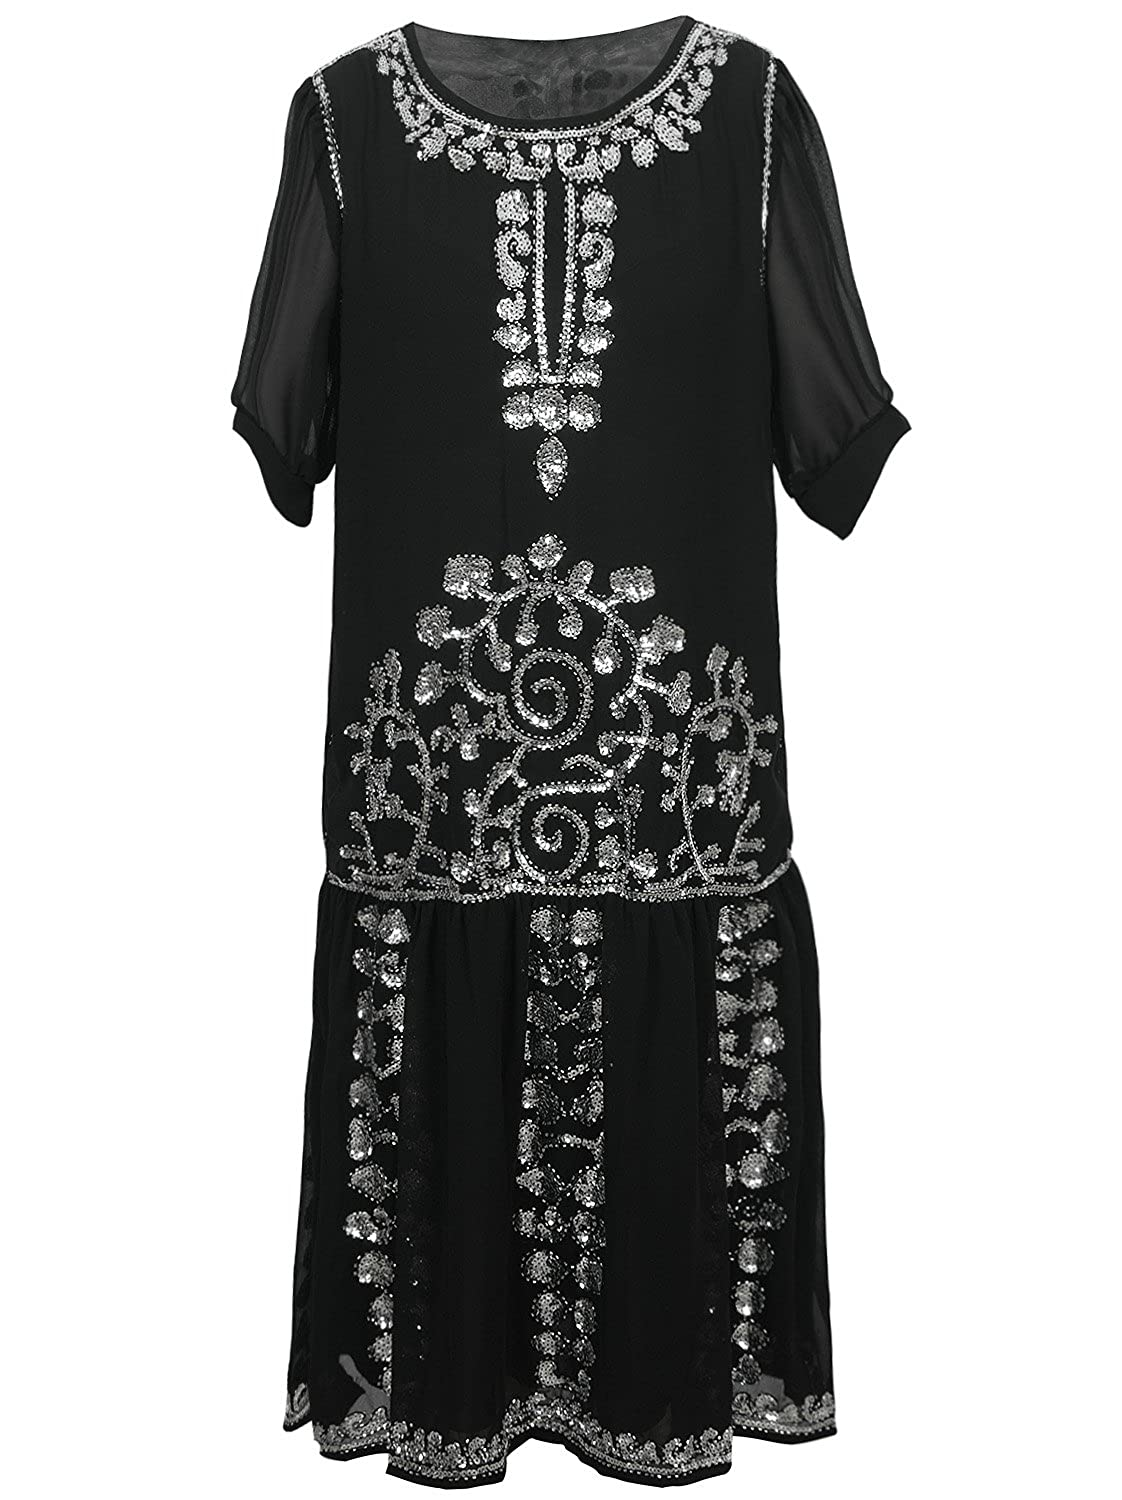 Roaring 20s Costumes- Flapper Costumes, Gangster Costumes Vijiv Womens Black 1920s Vintage Charleston Chiffon Beaded Sequin Flapper Dress $44.99 AT vintagedancer.com